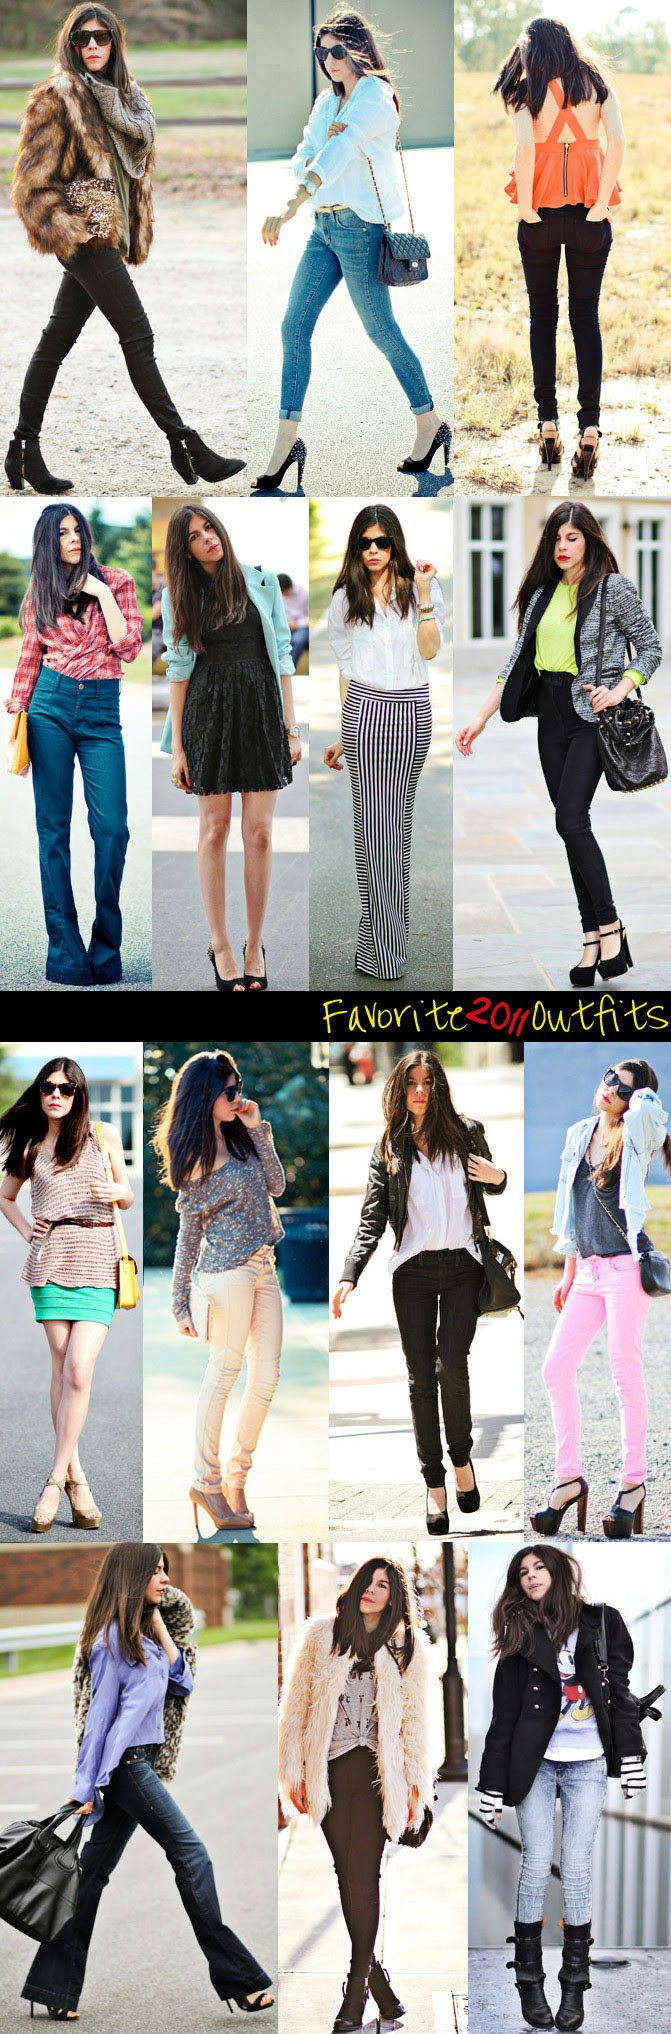 Fashion Best Outfits 2011 Collage